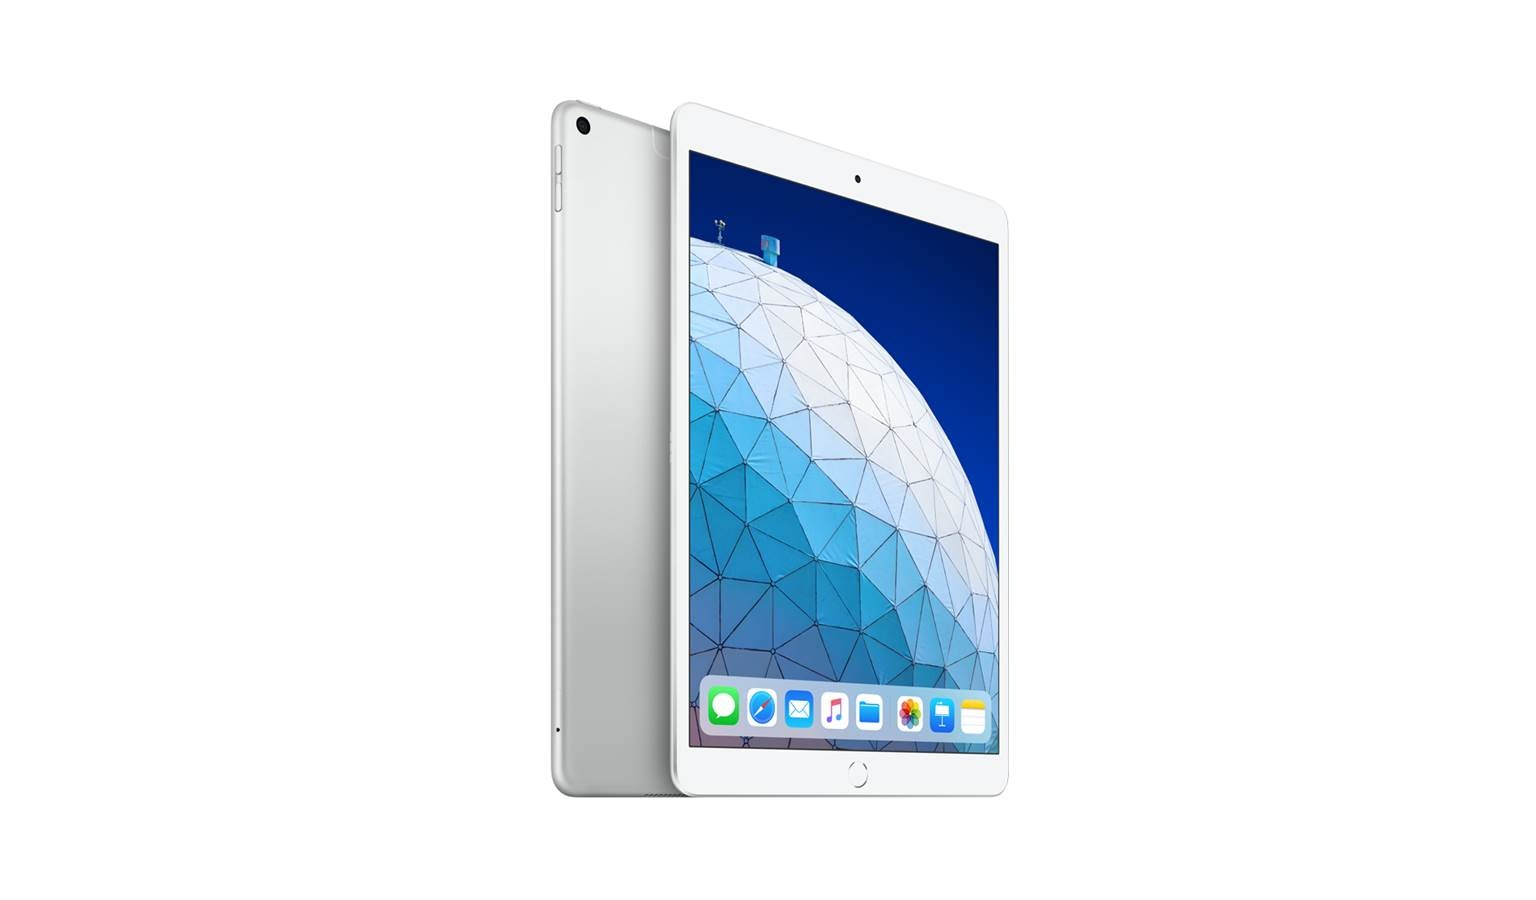 Apple iPad Air 4G (64GB) - Silver (Front)